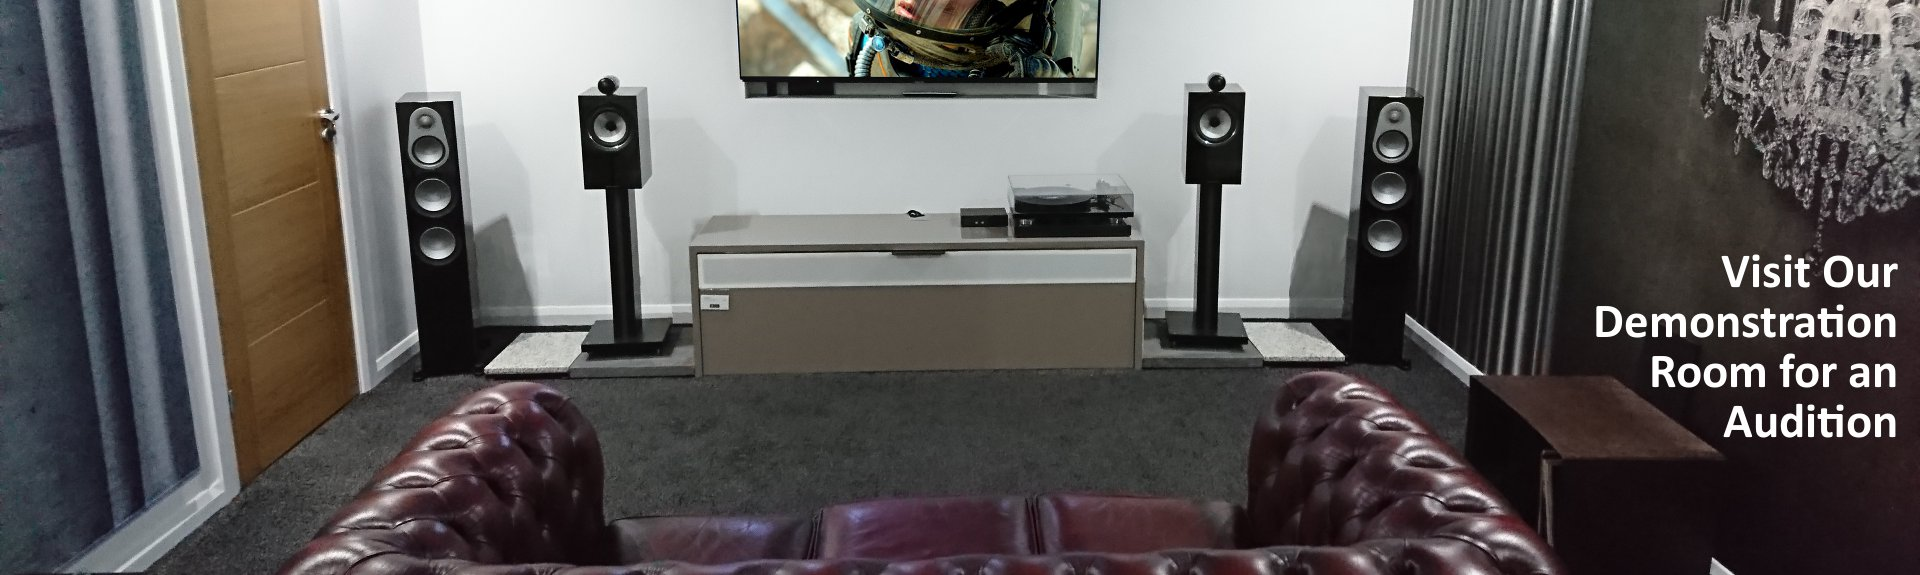 Visit Our Demo Room